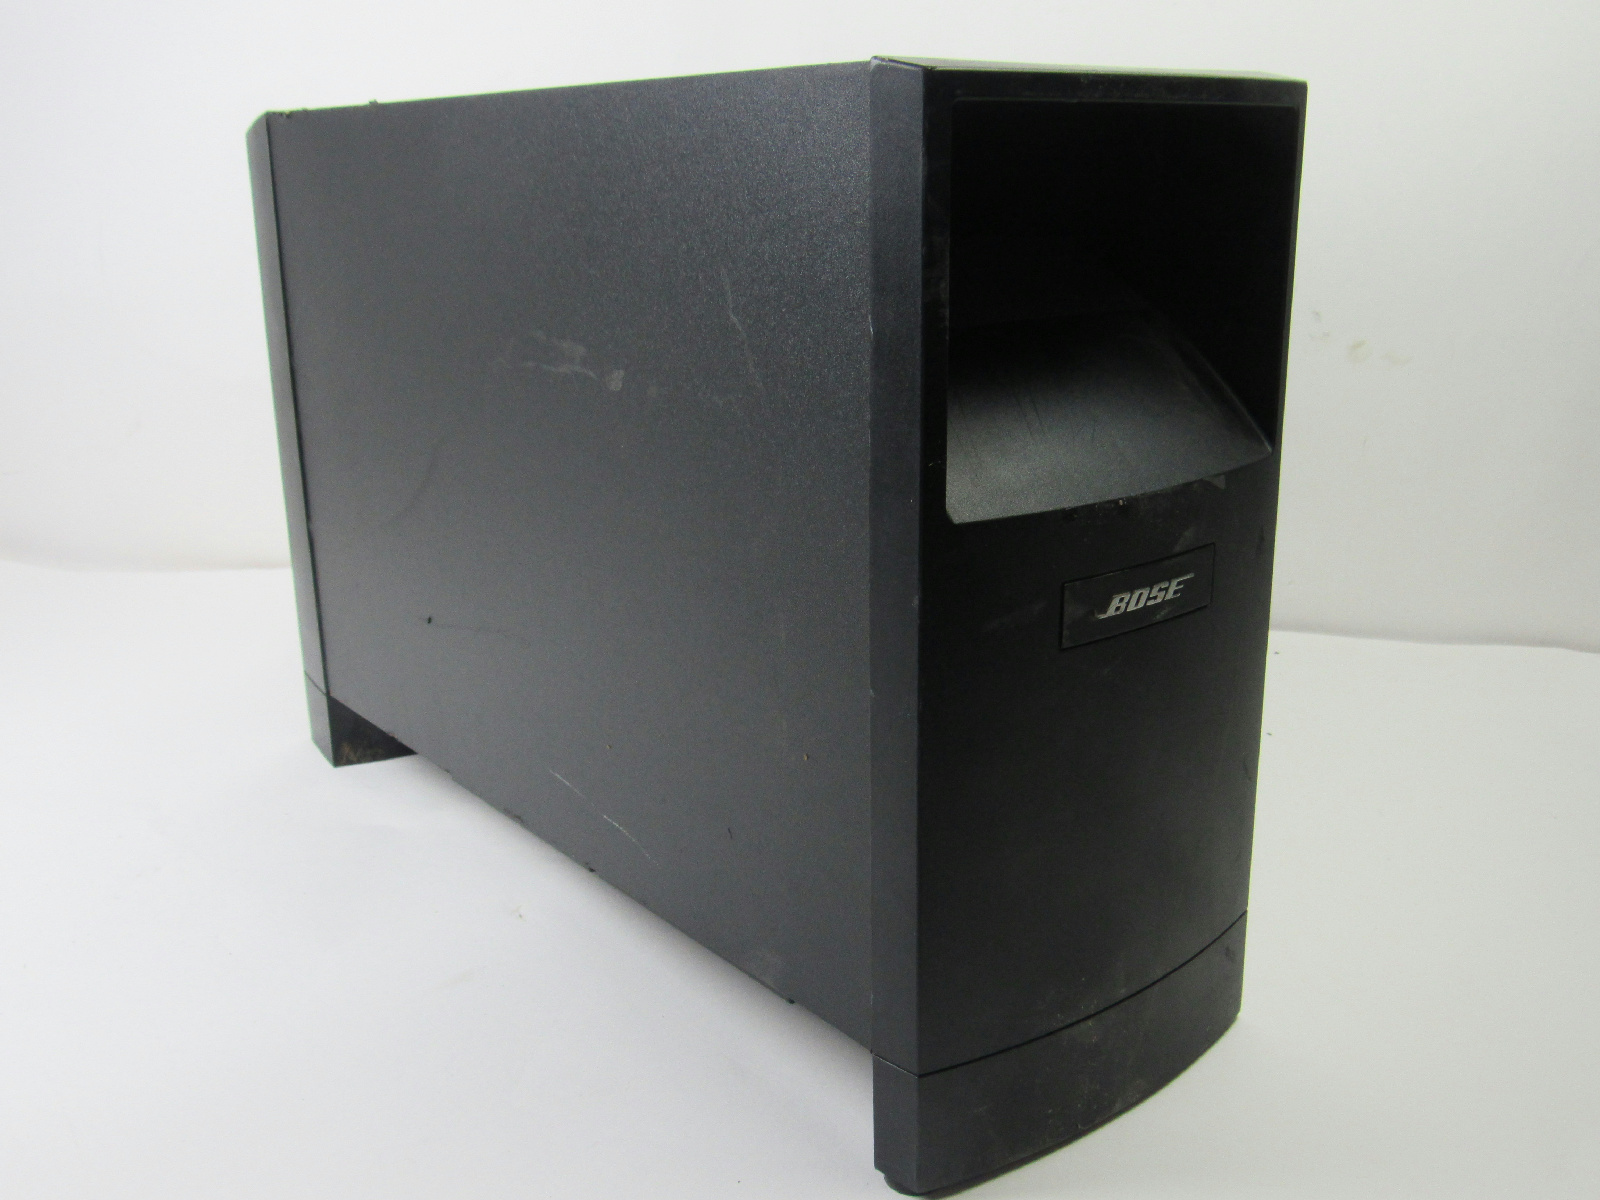 bose acoustimass 10 series iii home theater surround sound. Black Bedroom Furniture Sets. Home Design Ideas